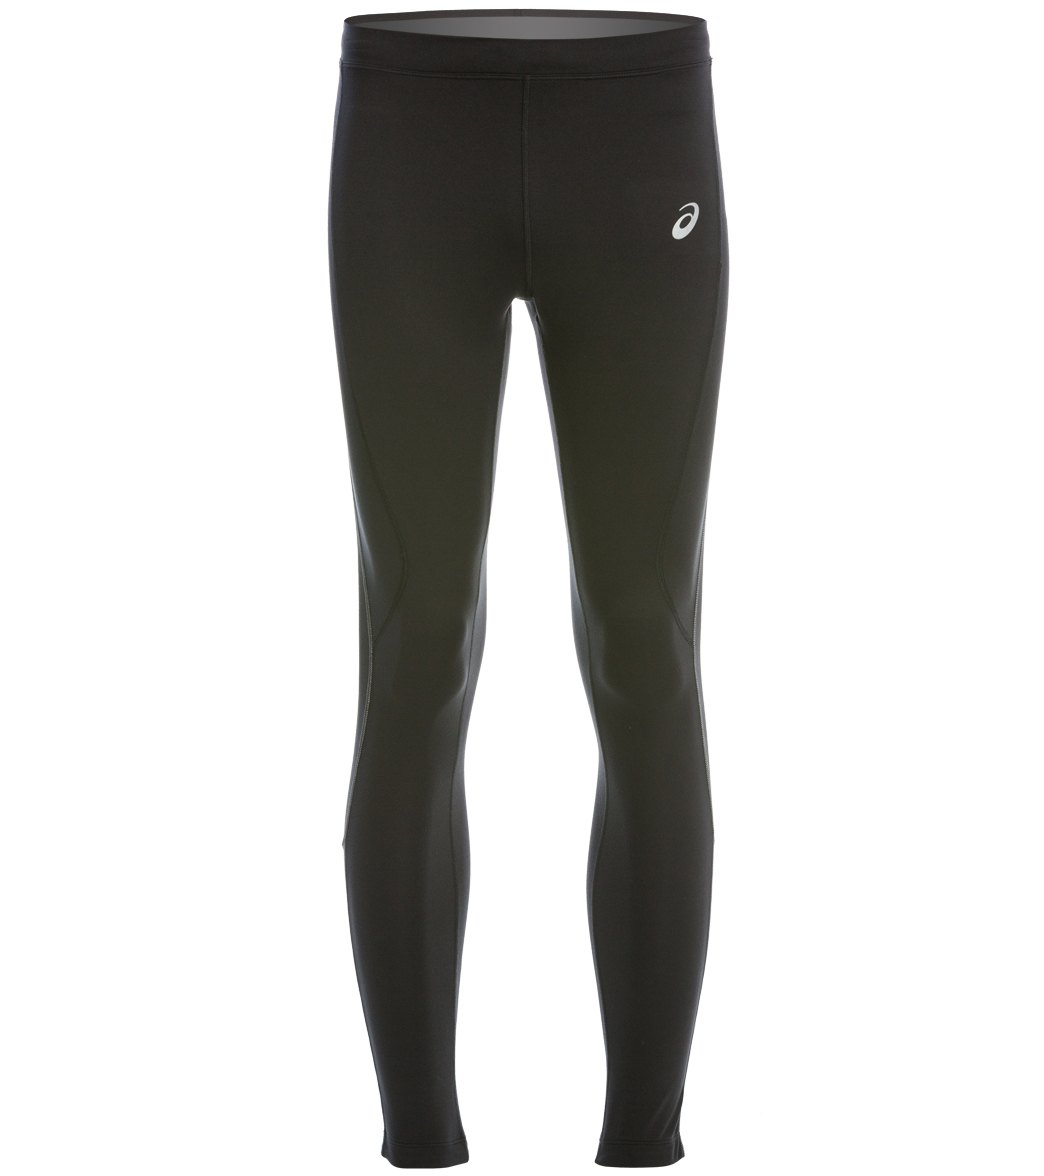 0a721161b96a Asics Men s Thermopolis Tight at SwimOutlet.com - Free Shipping